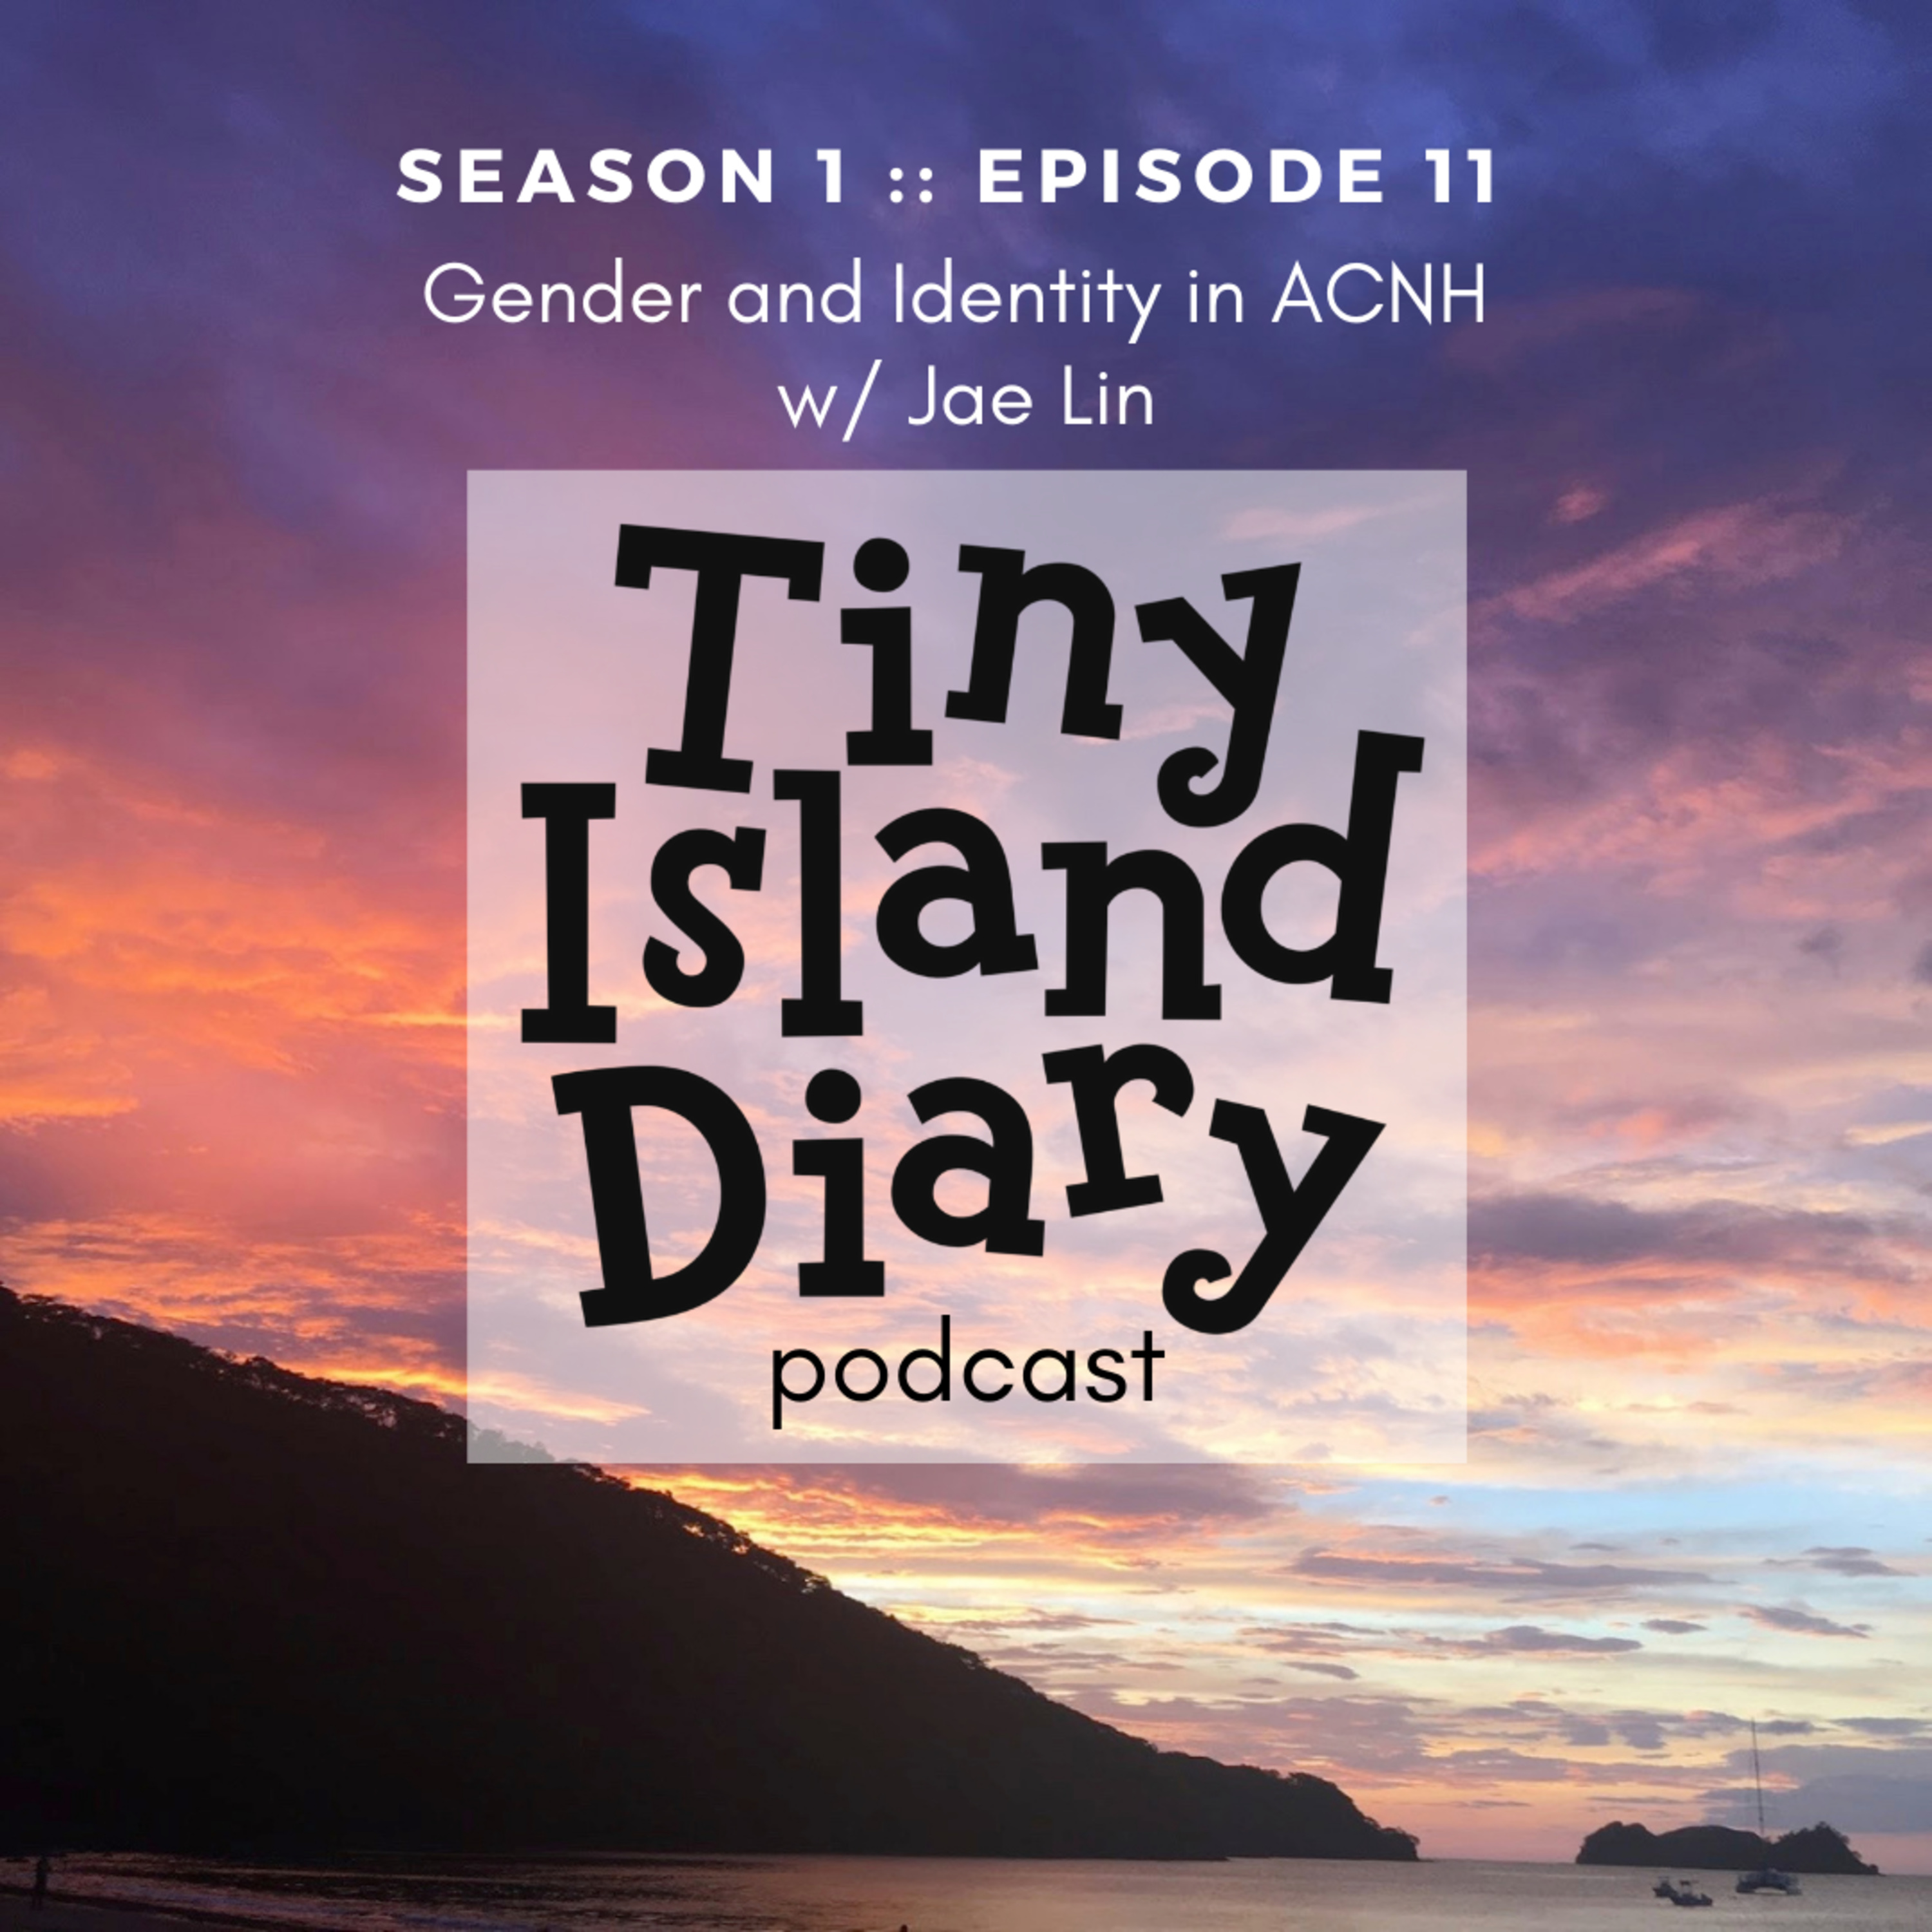 S1E11: Gender and Identity in #ACNH w Jae Lin